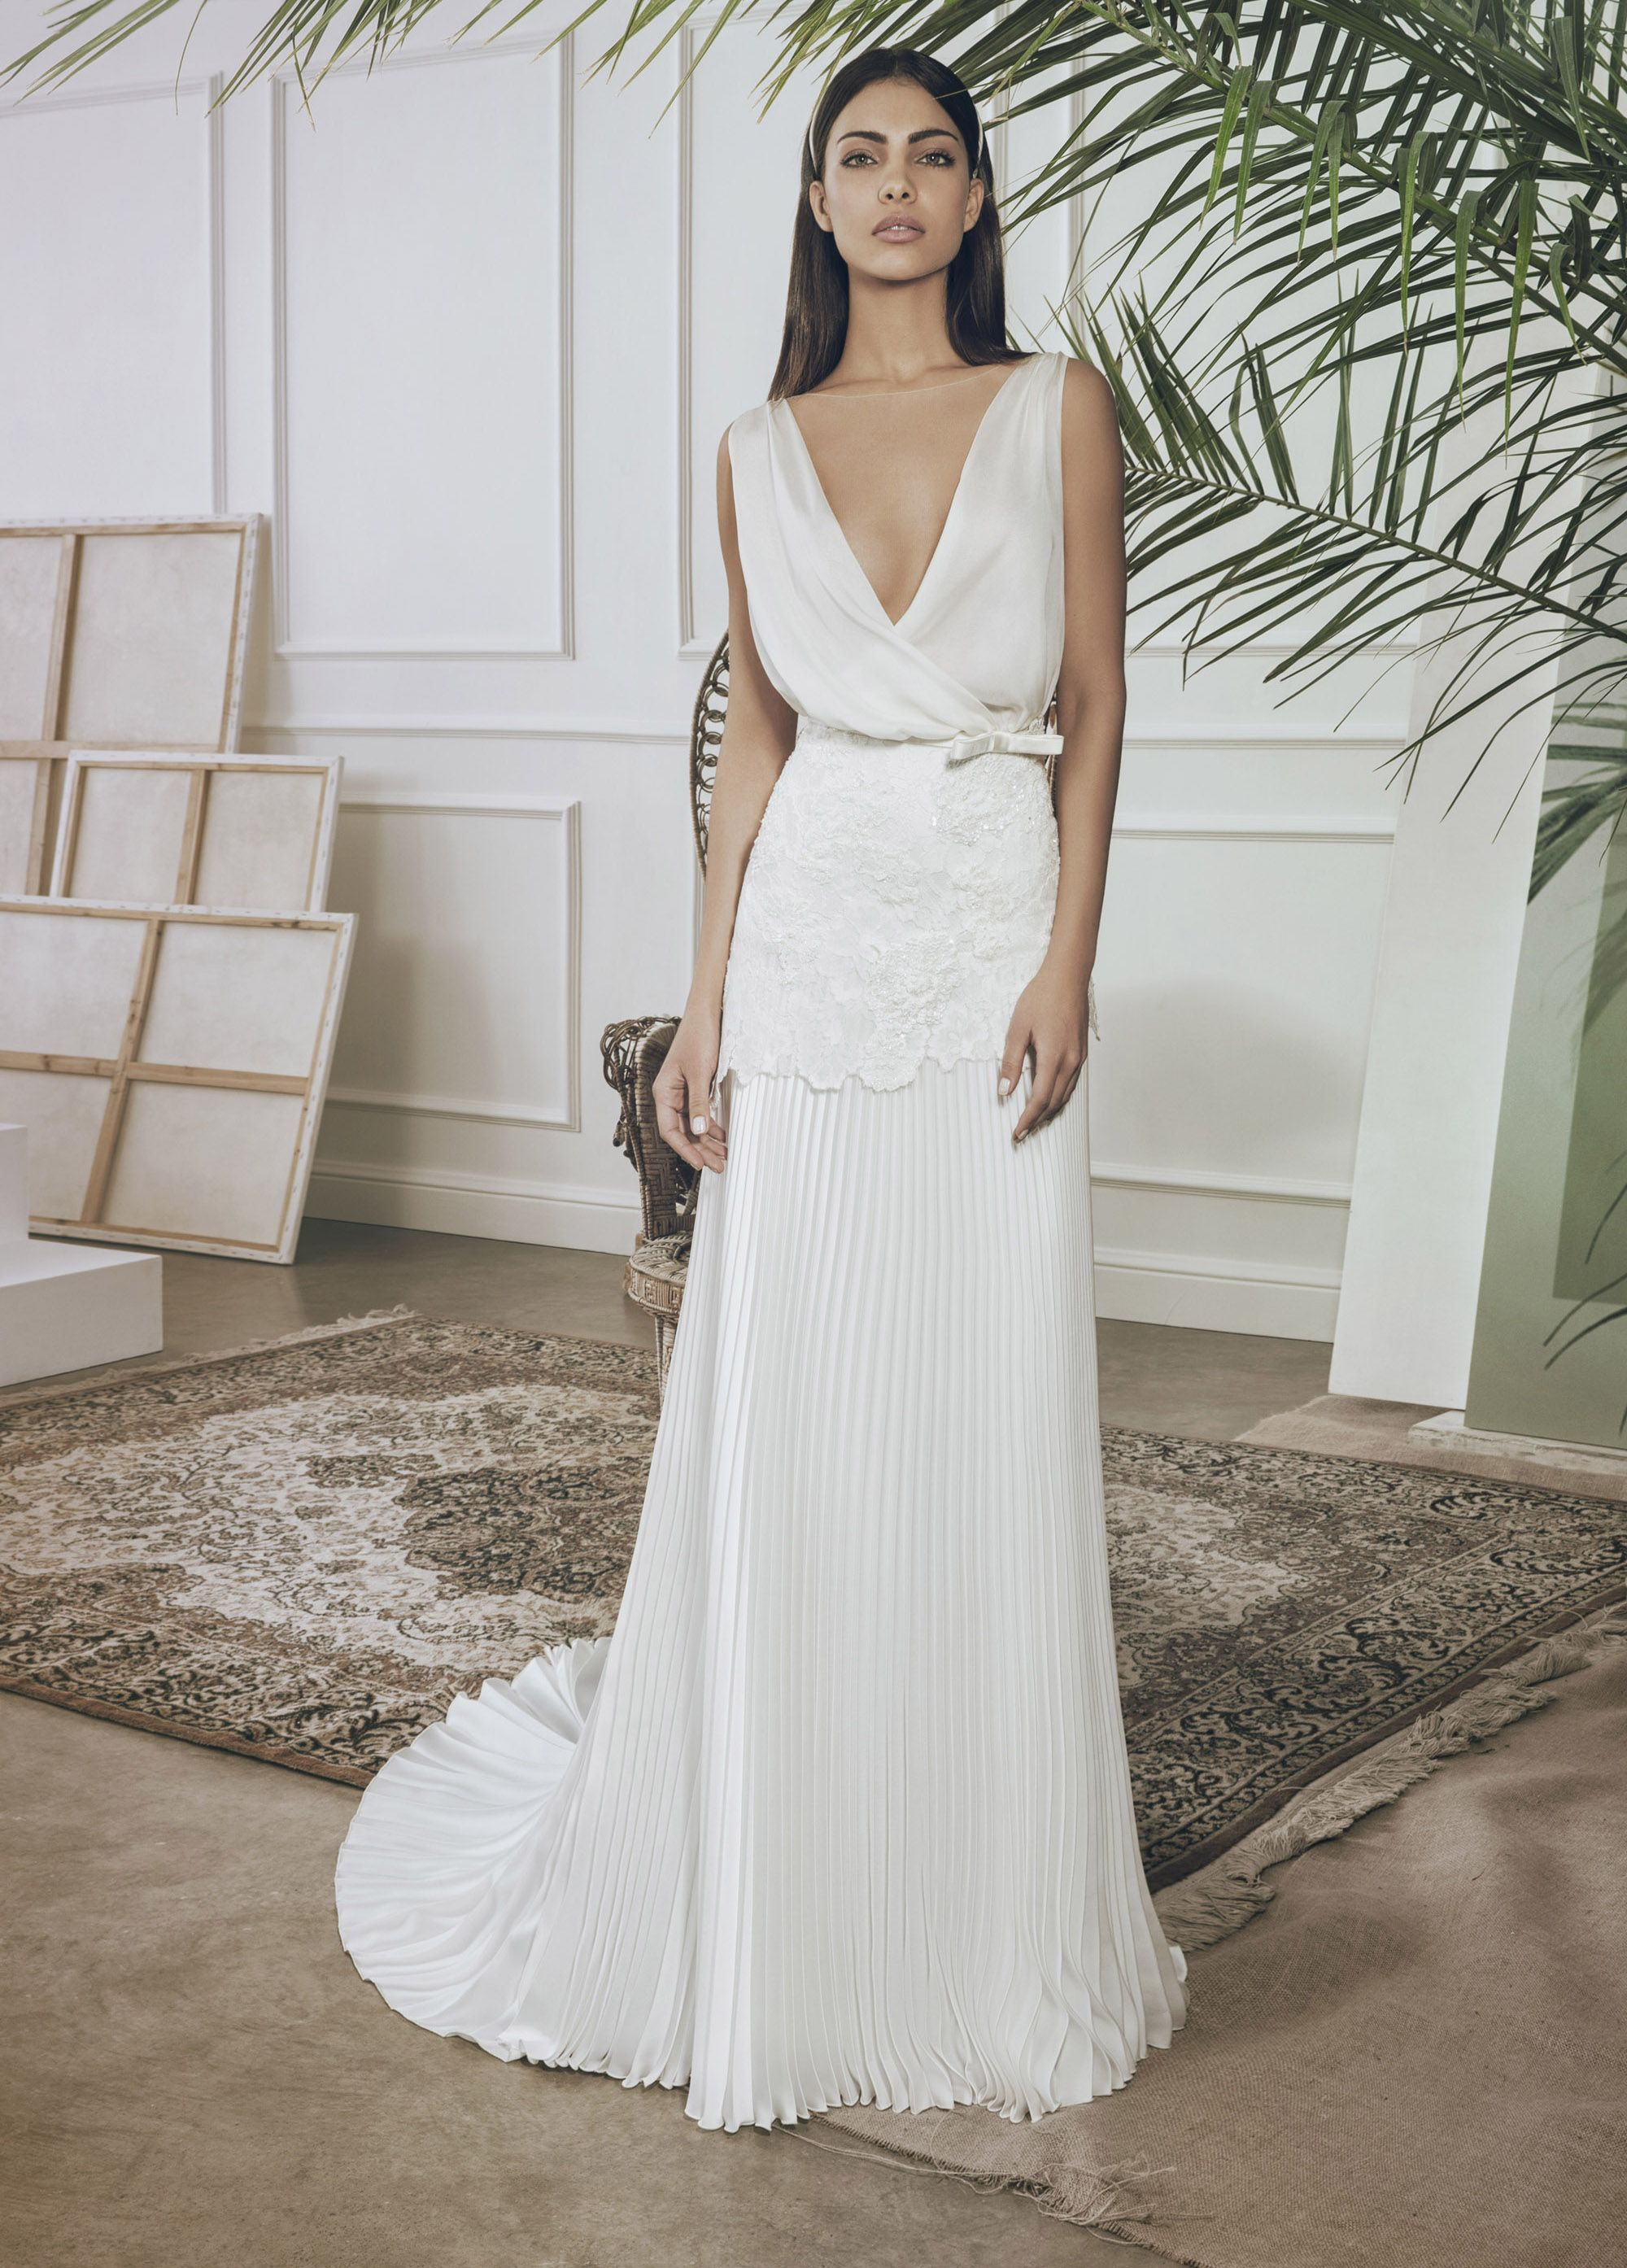 2d187b6909a8 Pin di Bellantuono Bridal Group su Bellantuono Sartoria 2018 ...